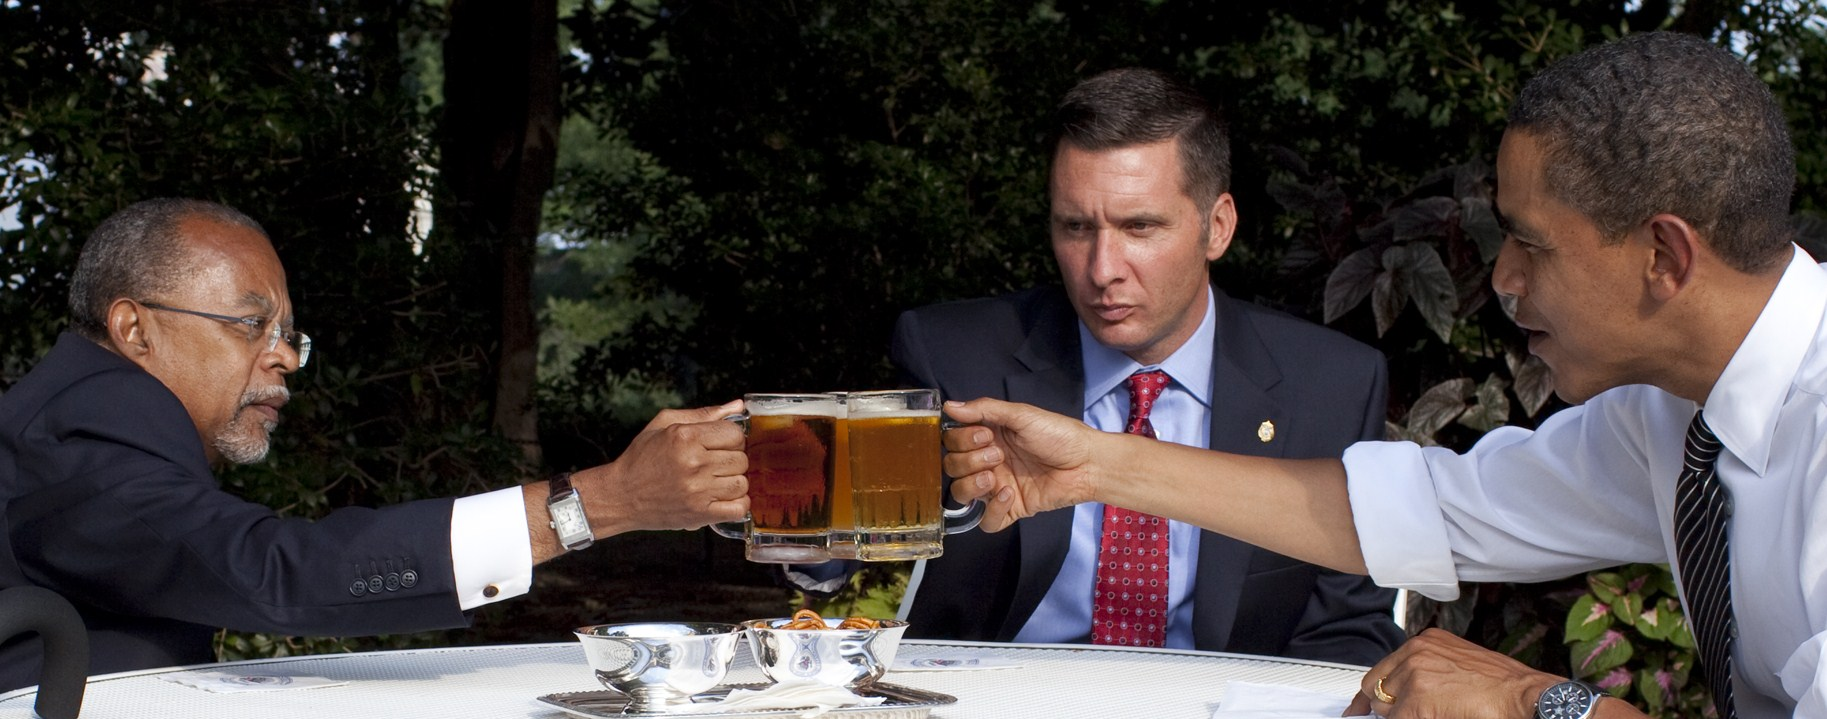 Beer_summit_cheers.jpg